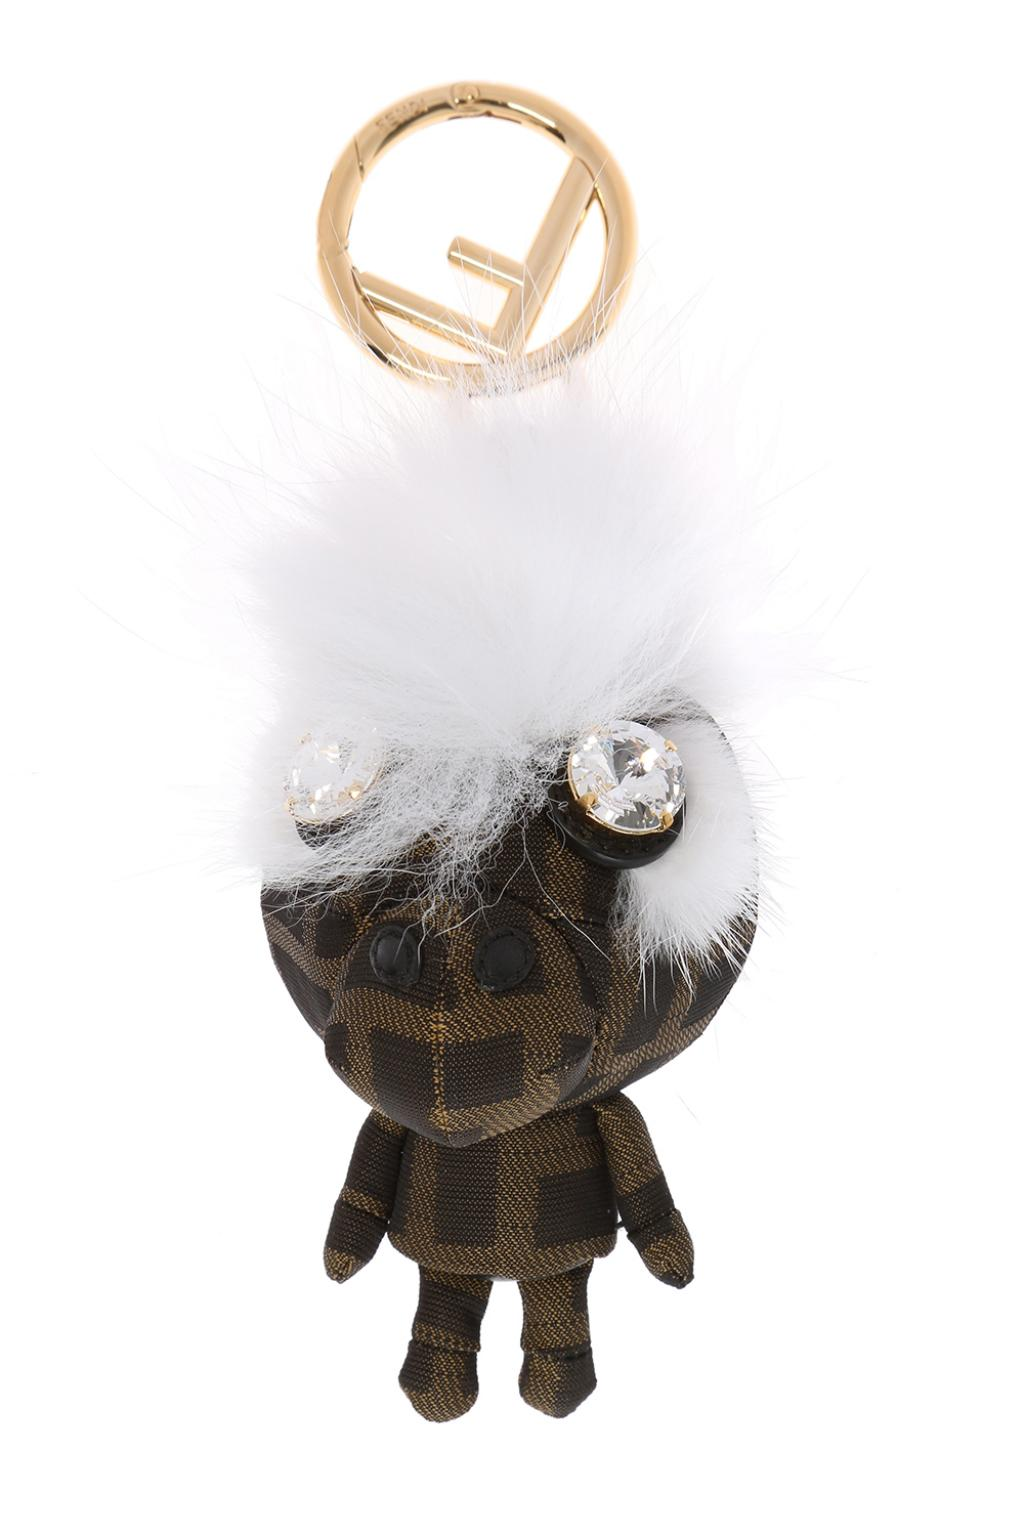 Fendi 'Space Monkey' keyring